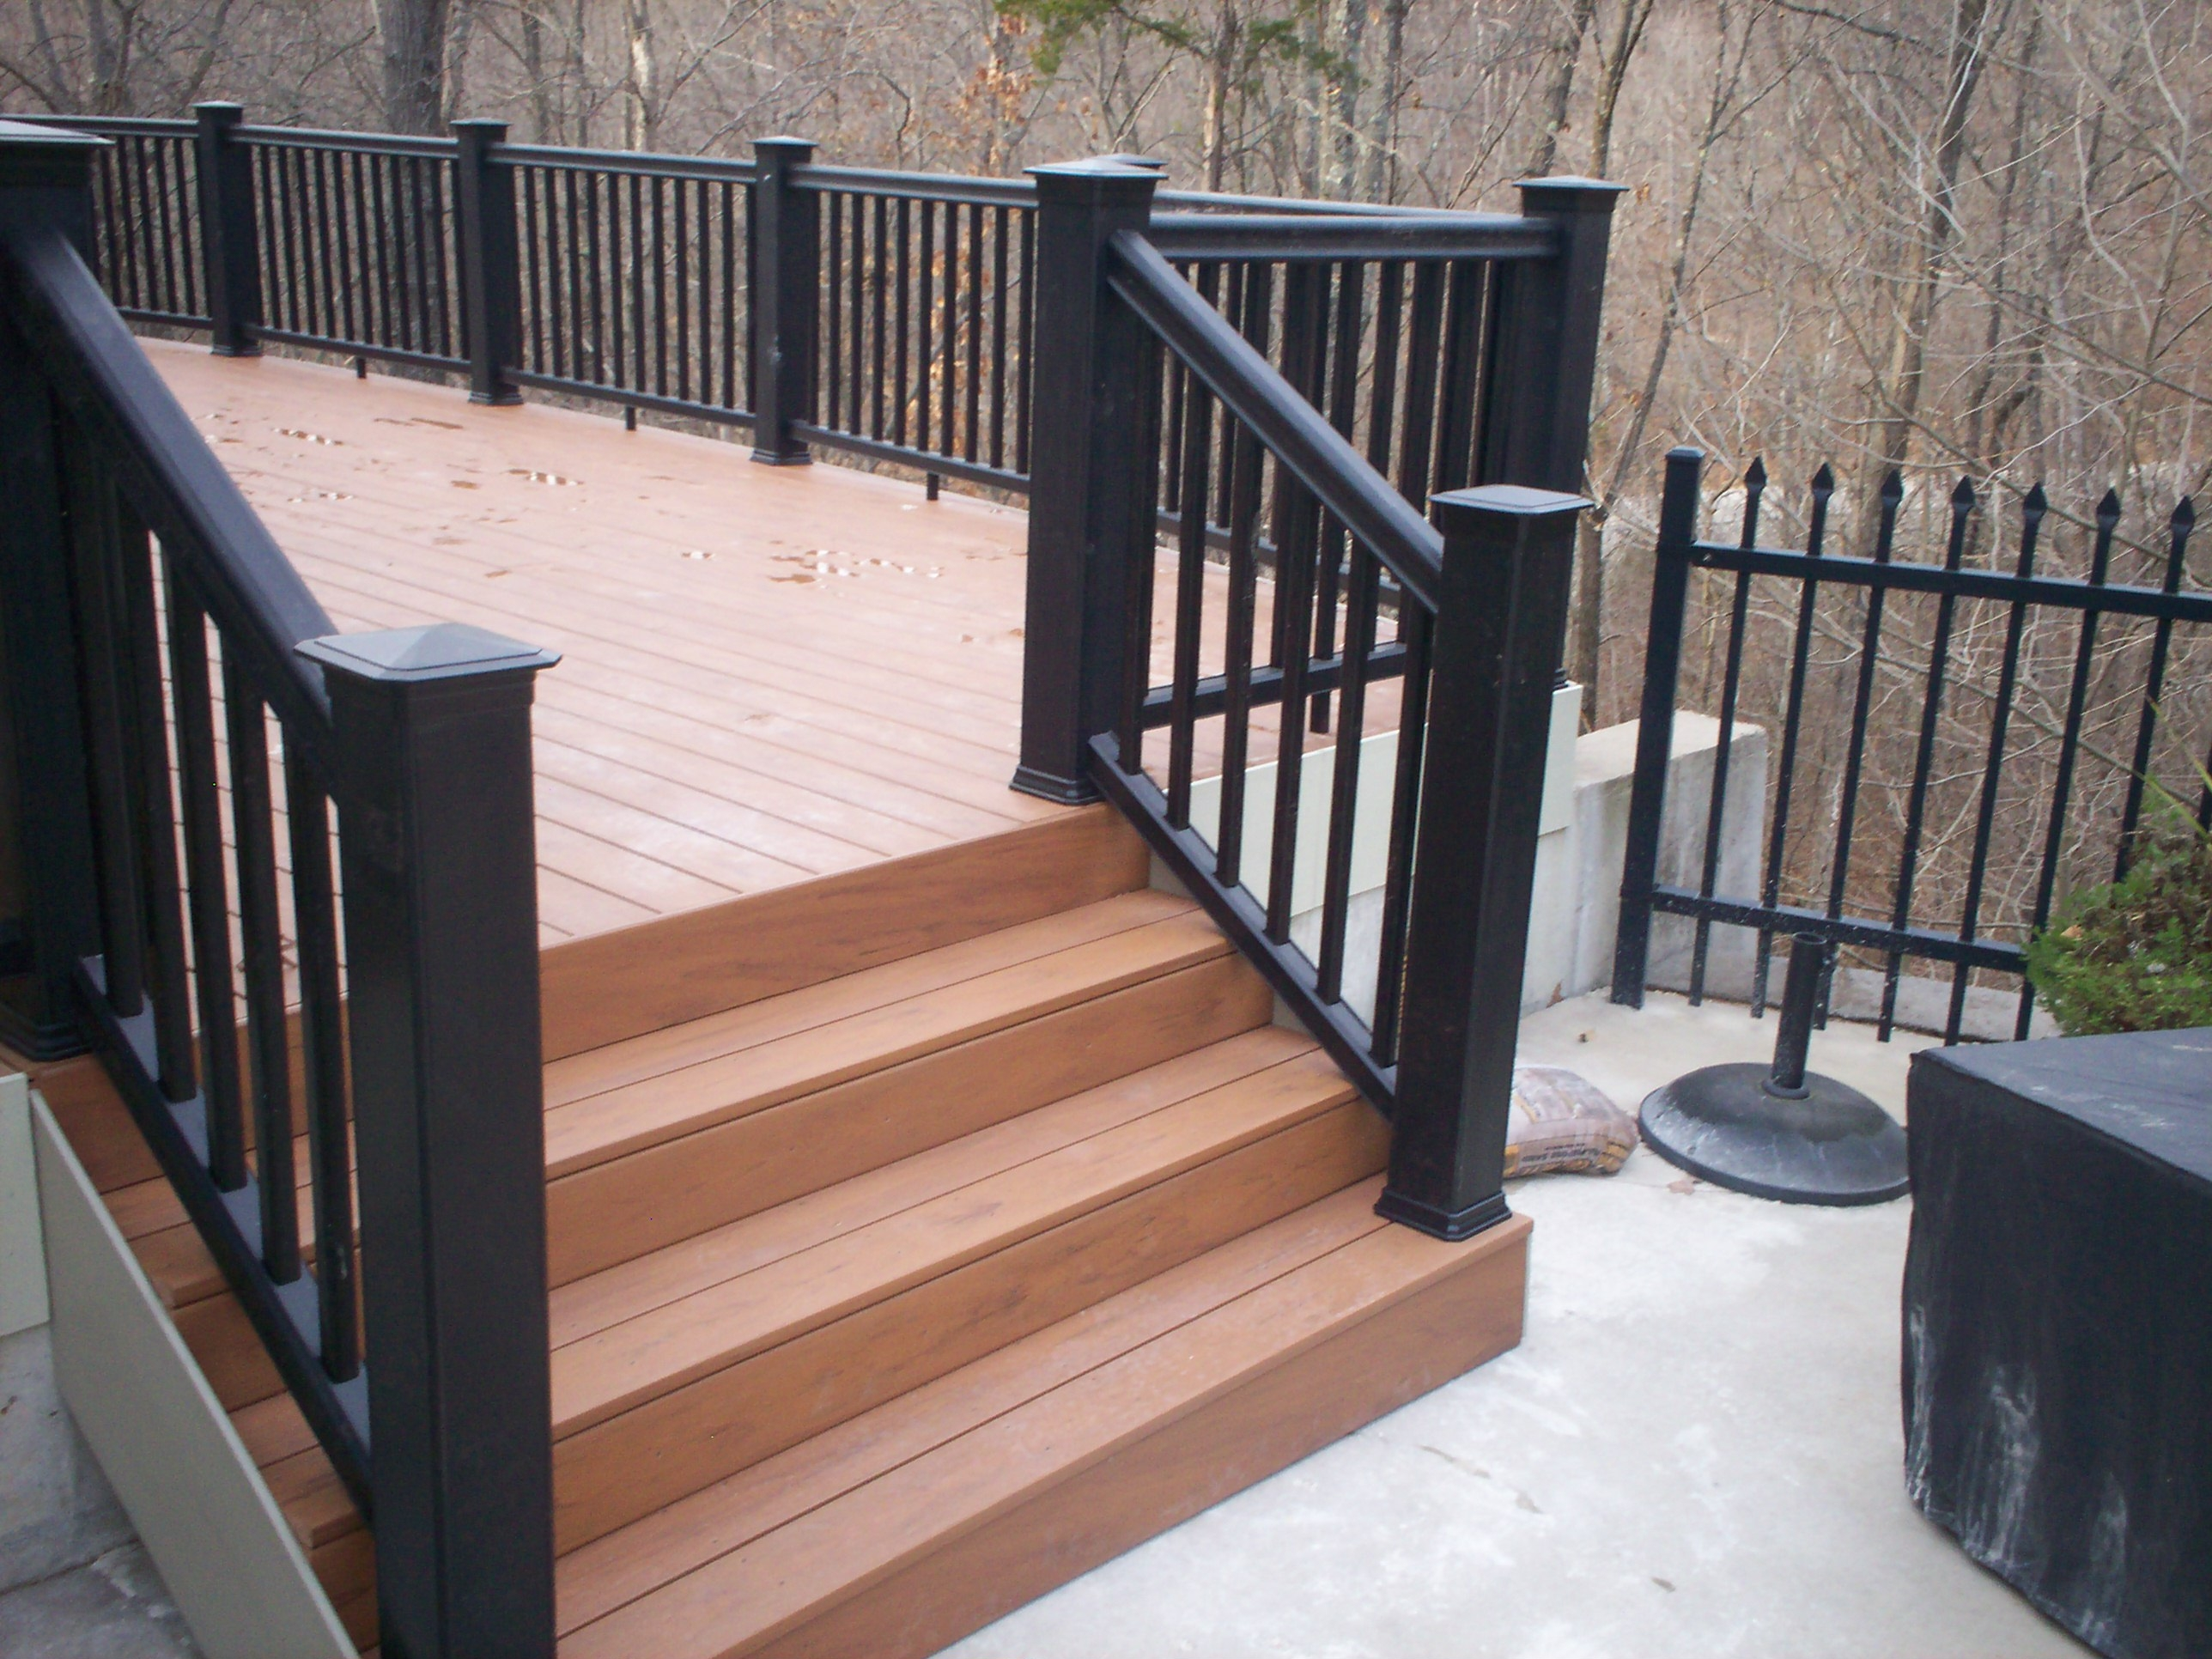 Deck Railing – Stylish Stunning Safe St Louis Decks | Safety Handrails For Outdoor Steps | Railing Kits | Simplified Building | Wrought Iron | Wood | Metal